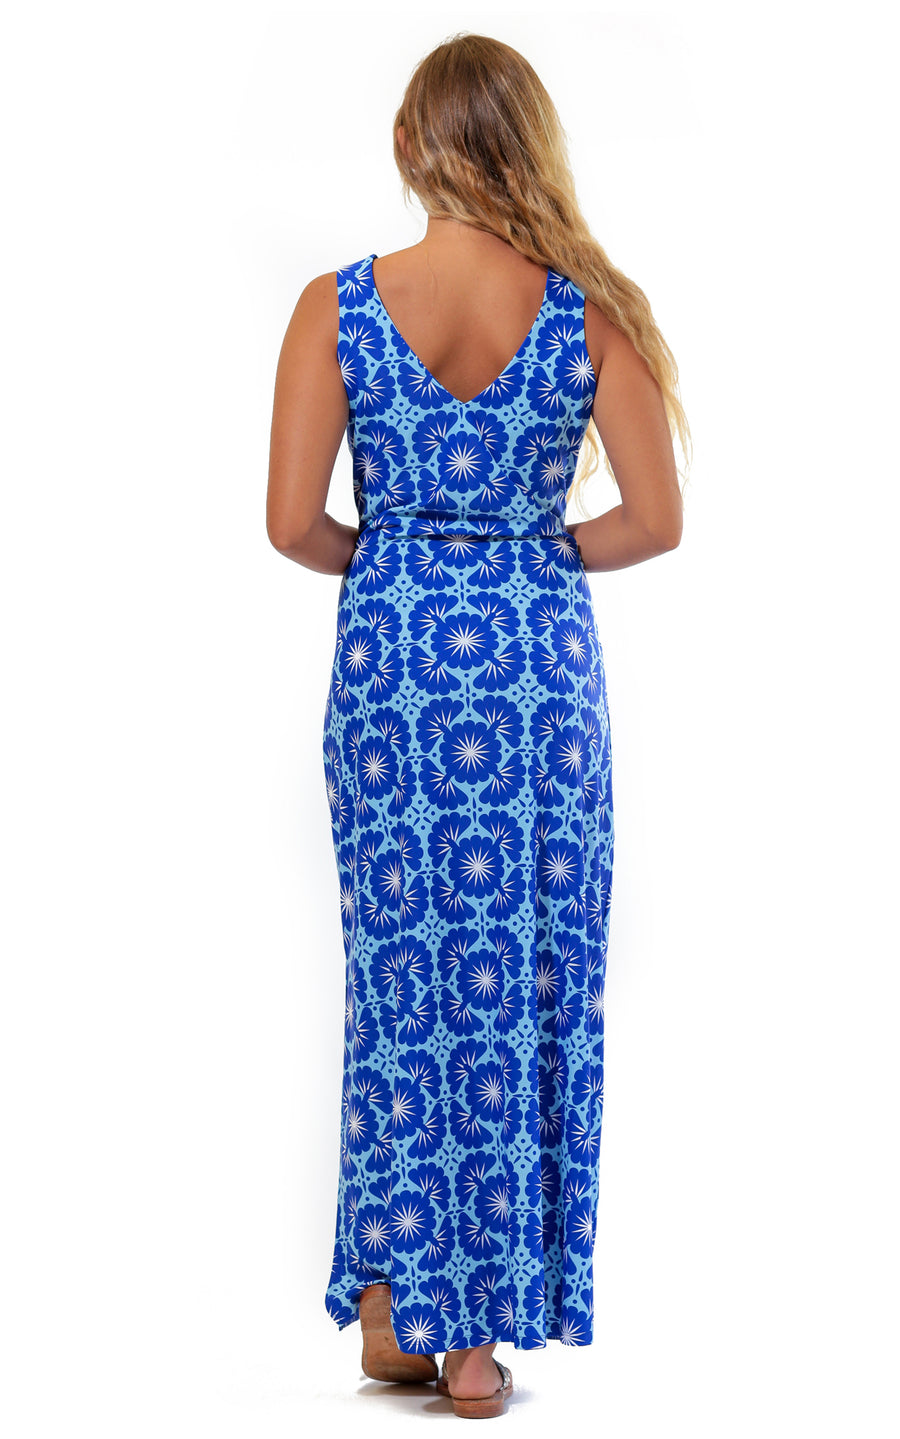 All For Color-Blue Lagoon Seaside Ridge Maxi Dress - FINAL SALE-Dresses